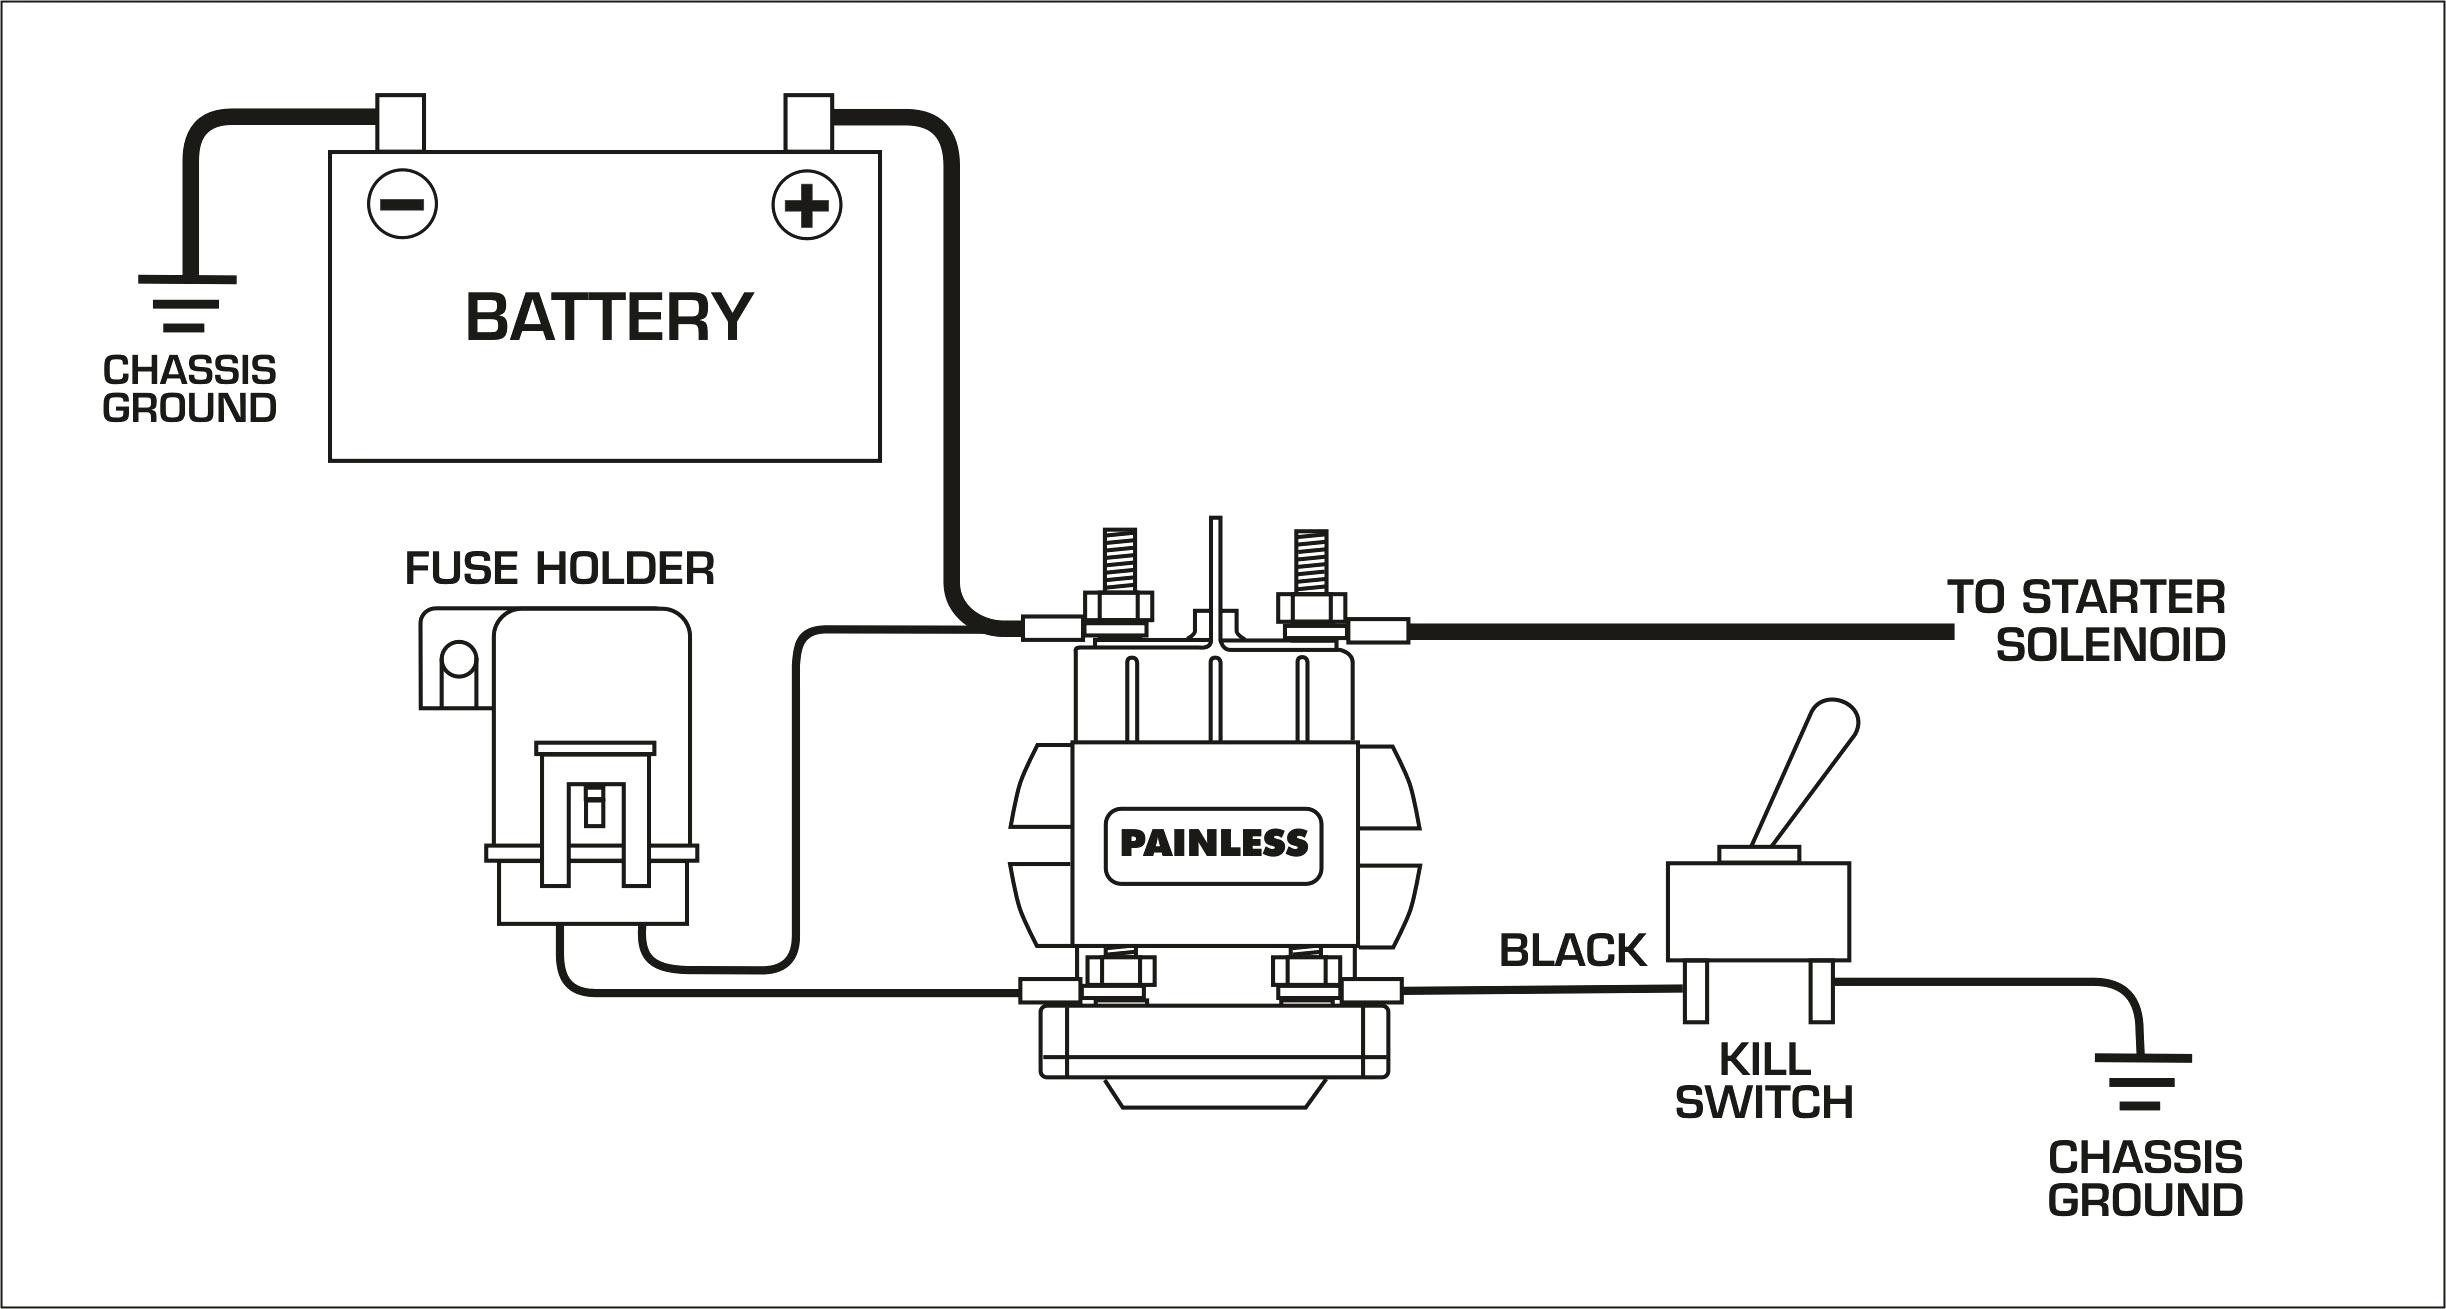 Starter Solenoid Switch Wiring Diagram Wiring Diagram